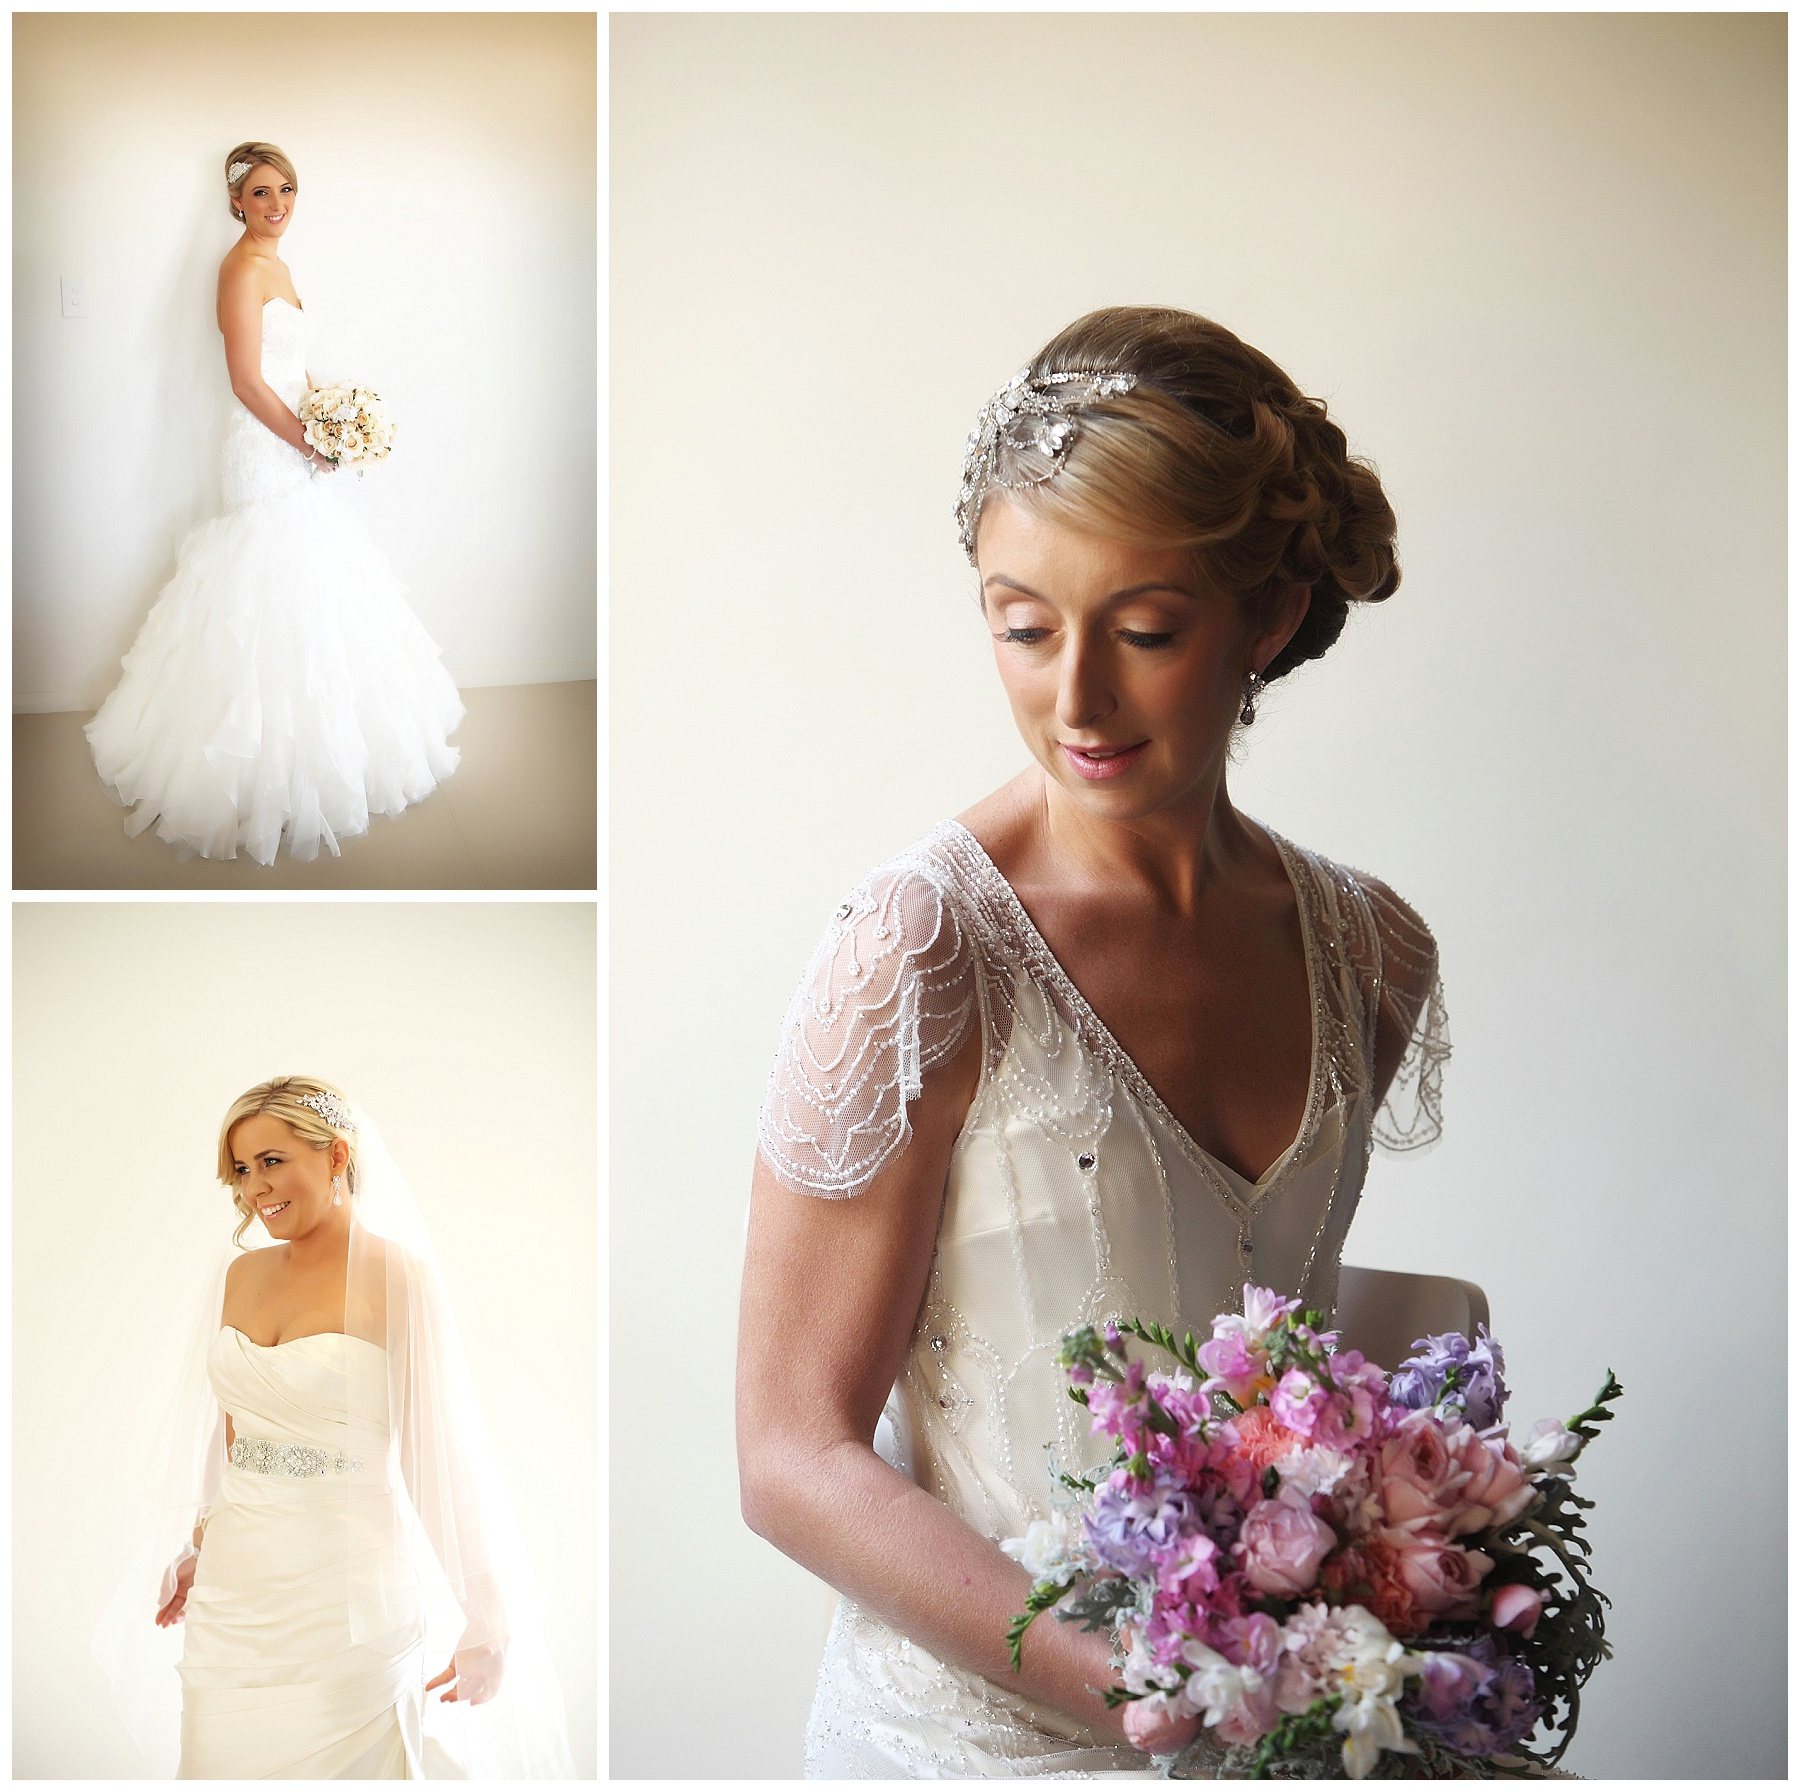 Bridal hair pieces, including wedding veils, birdcage veils, lace and crystal clips and floral crown.